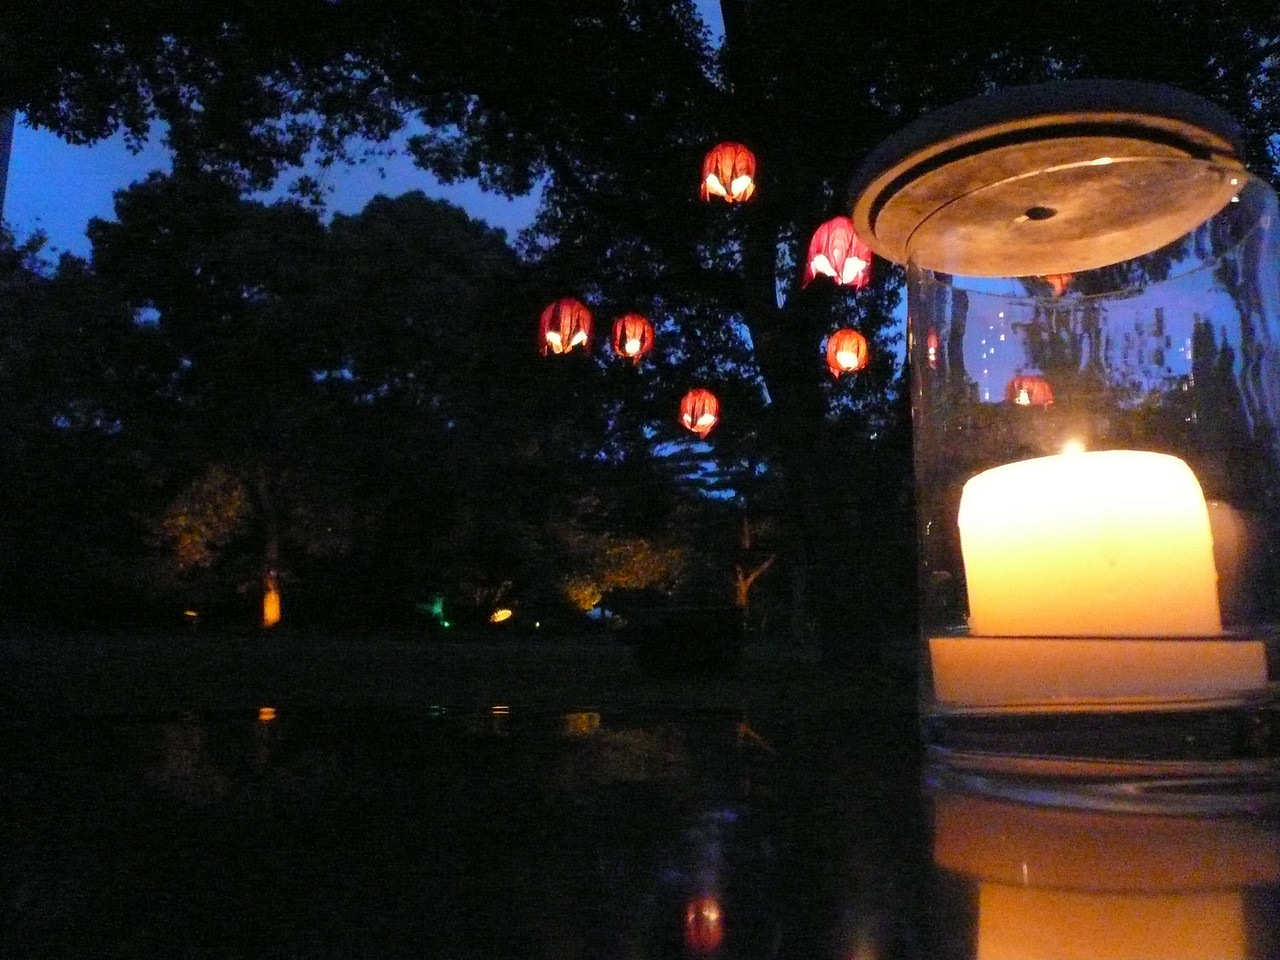 Faces Restaurant, Shanghai. unfortuately this wonderful restaurant, a favourite spot of mine for years and peaceful location was forced to close in Sept 2009. After ten years, the lease at Rui Jin Hotel, Shanghai has finally come to an end and Face Shanghai has closed its doors. An extensive building program to create a large hotel on the site has begun. The gardens may survive the onslaught but the peacefulness may never return as traffic intrudes.